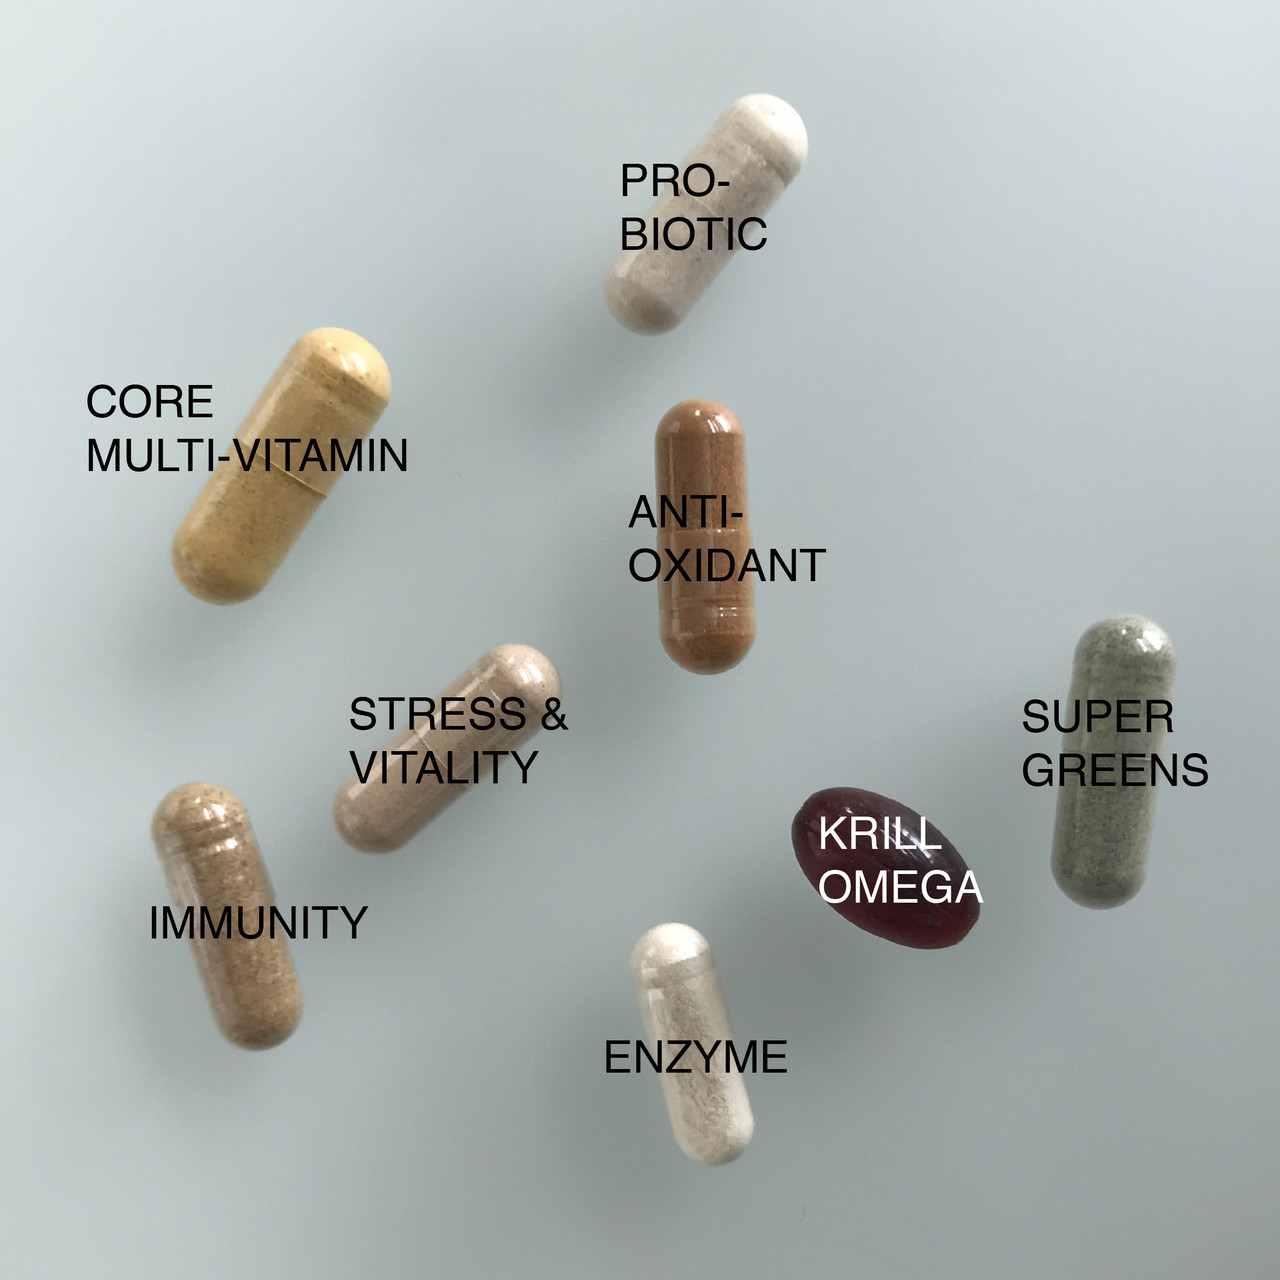 8 Individual supplements in each packet